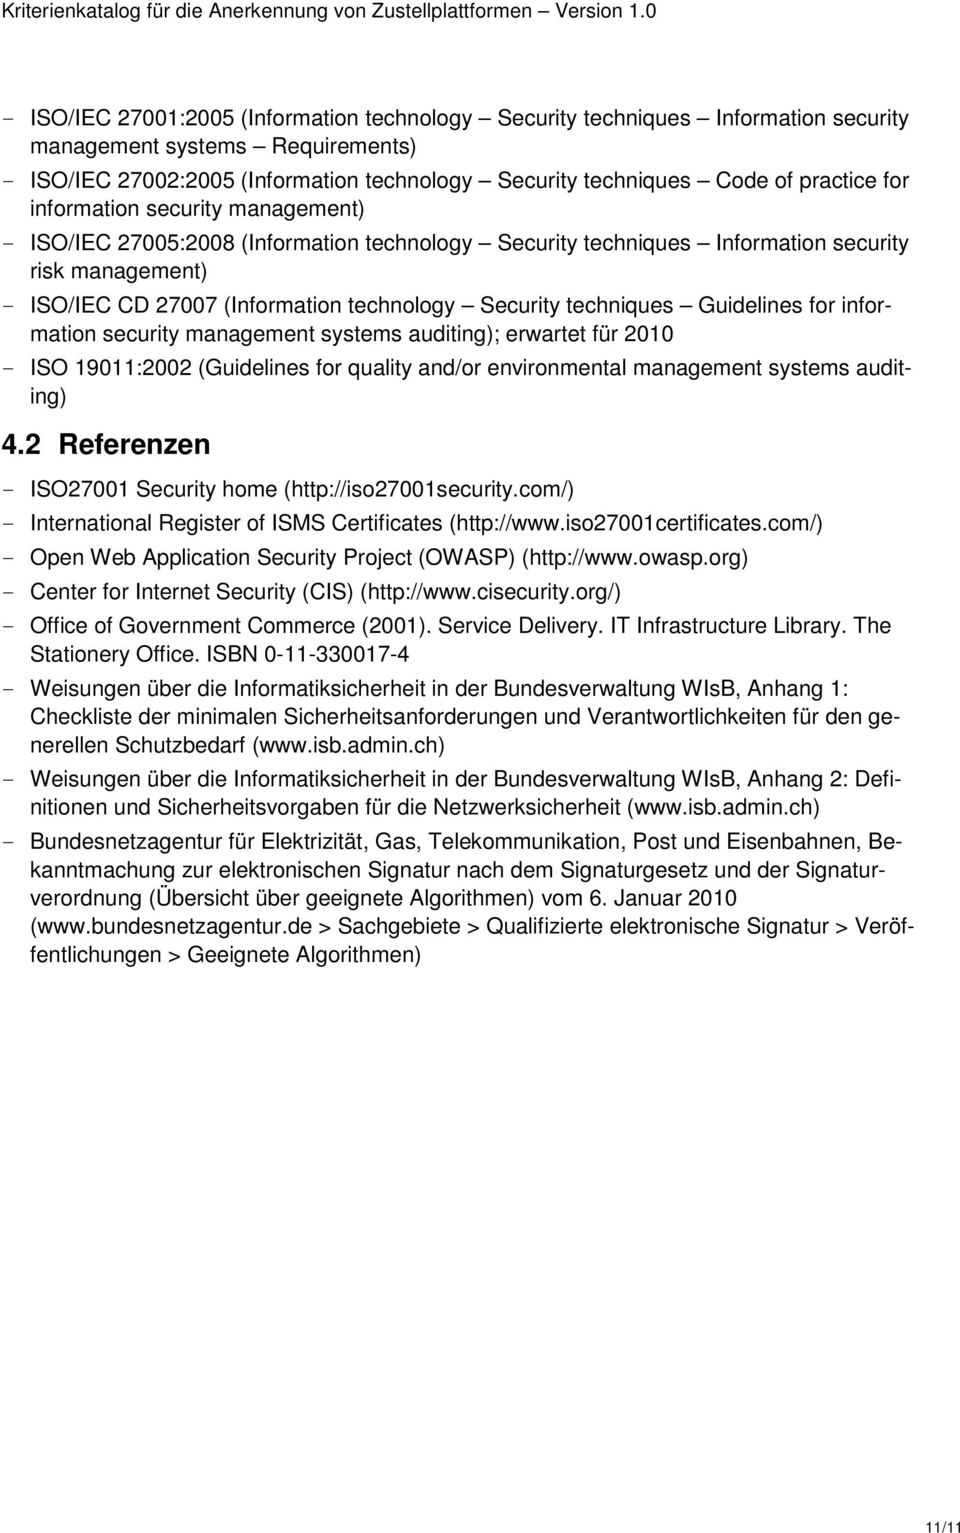 Security techniques Guidelines for information security management systems auditing); erwartet für 2010 - ISO 19011:2002 (Guidelines for quality and/or environmental management systems auditing) 4.